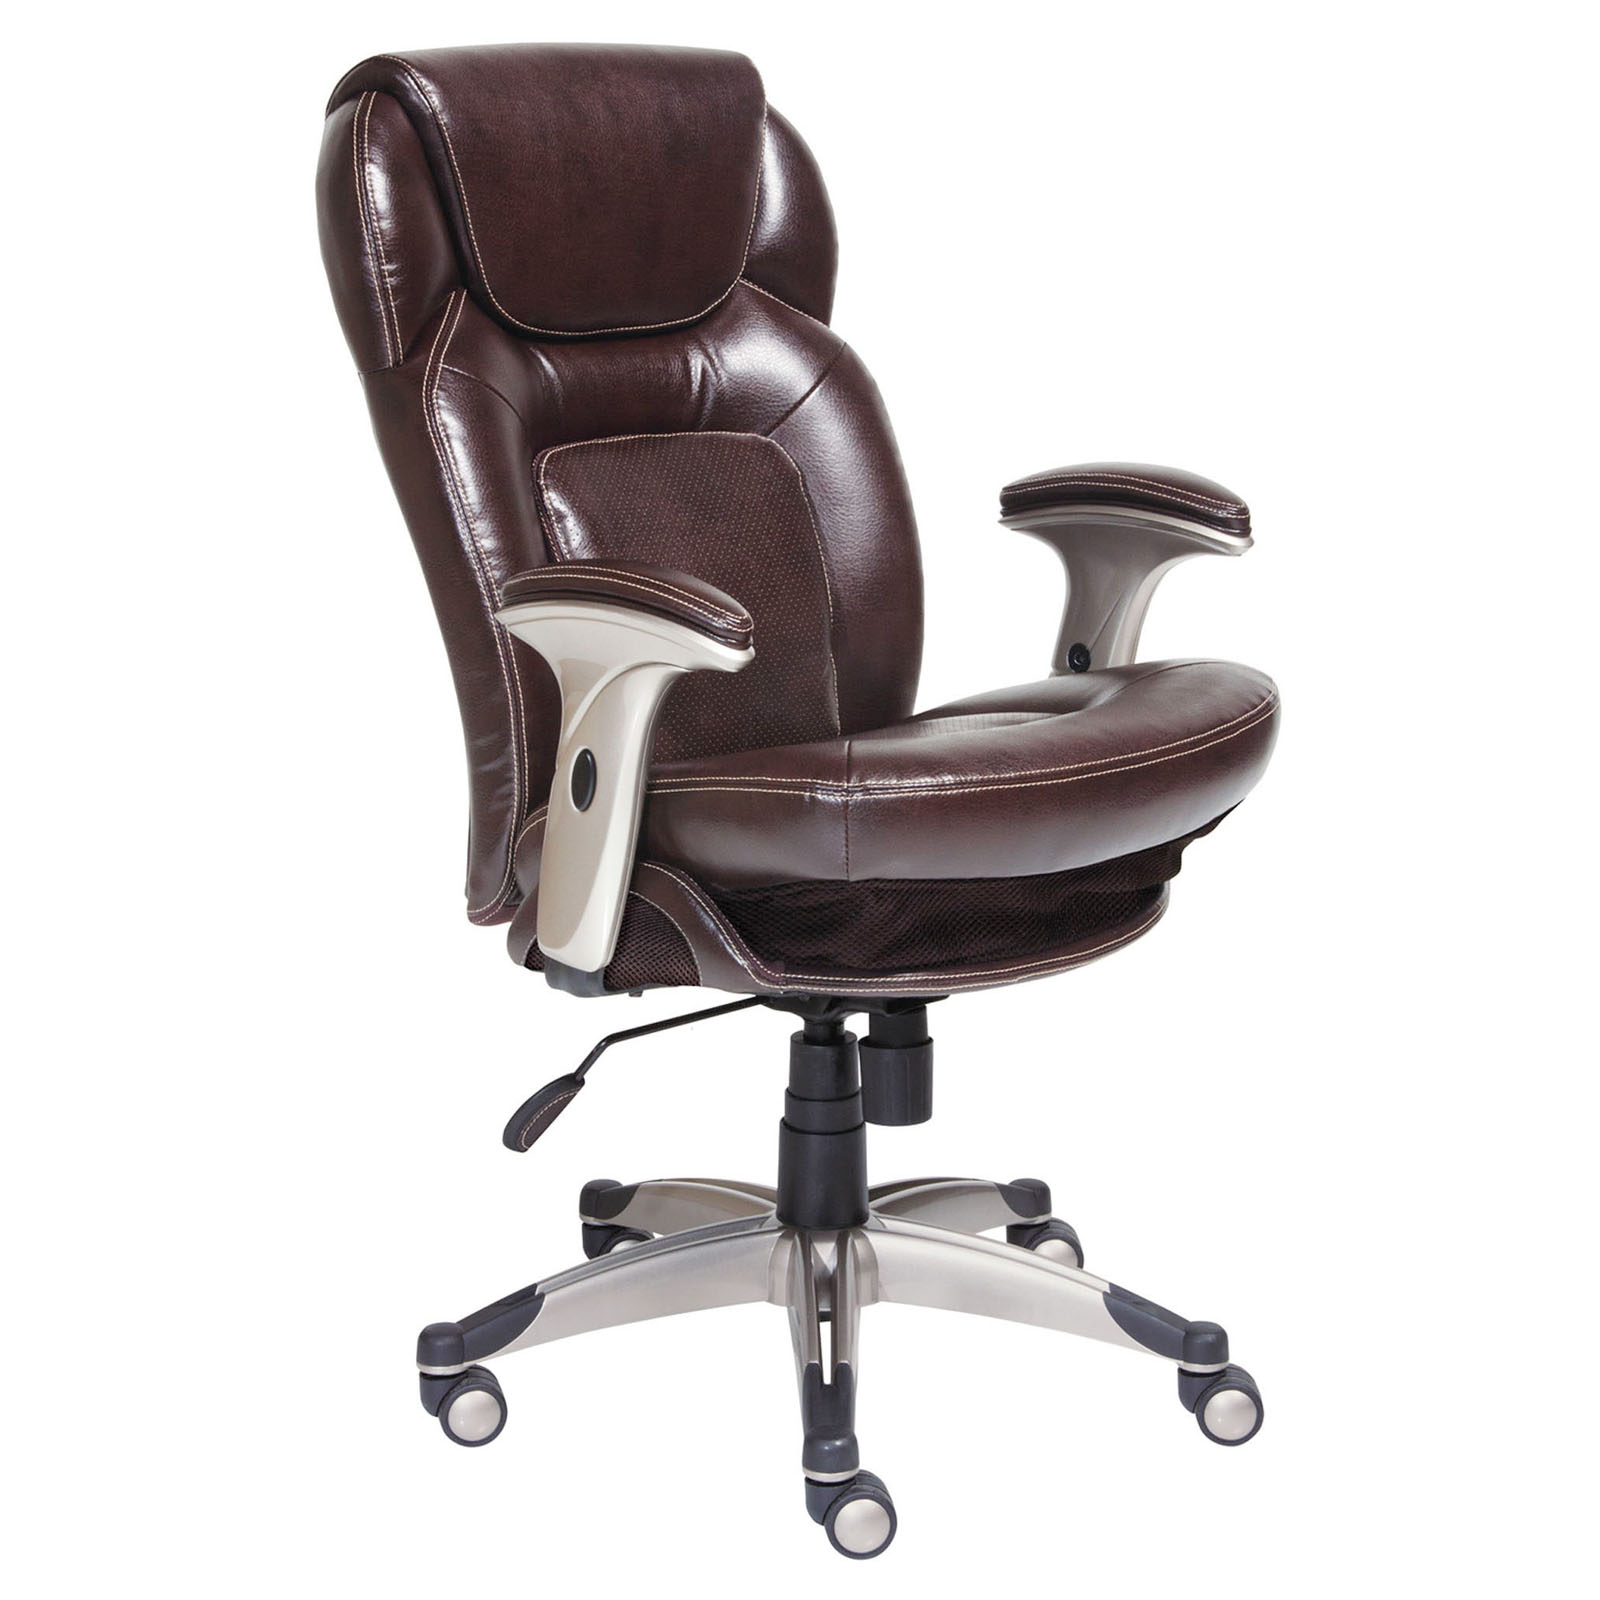 Serta Bonded Leather Ergo Executive fice Chair Black